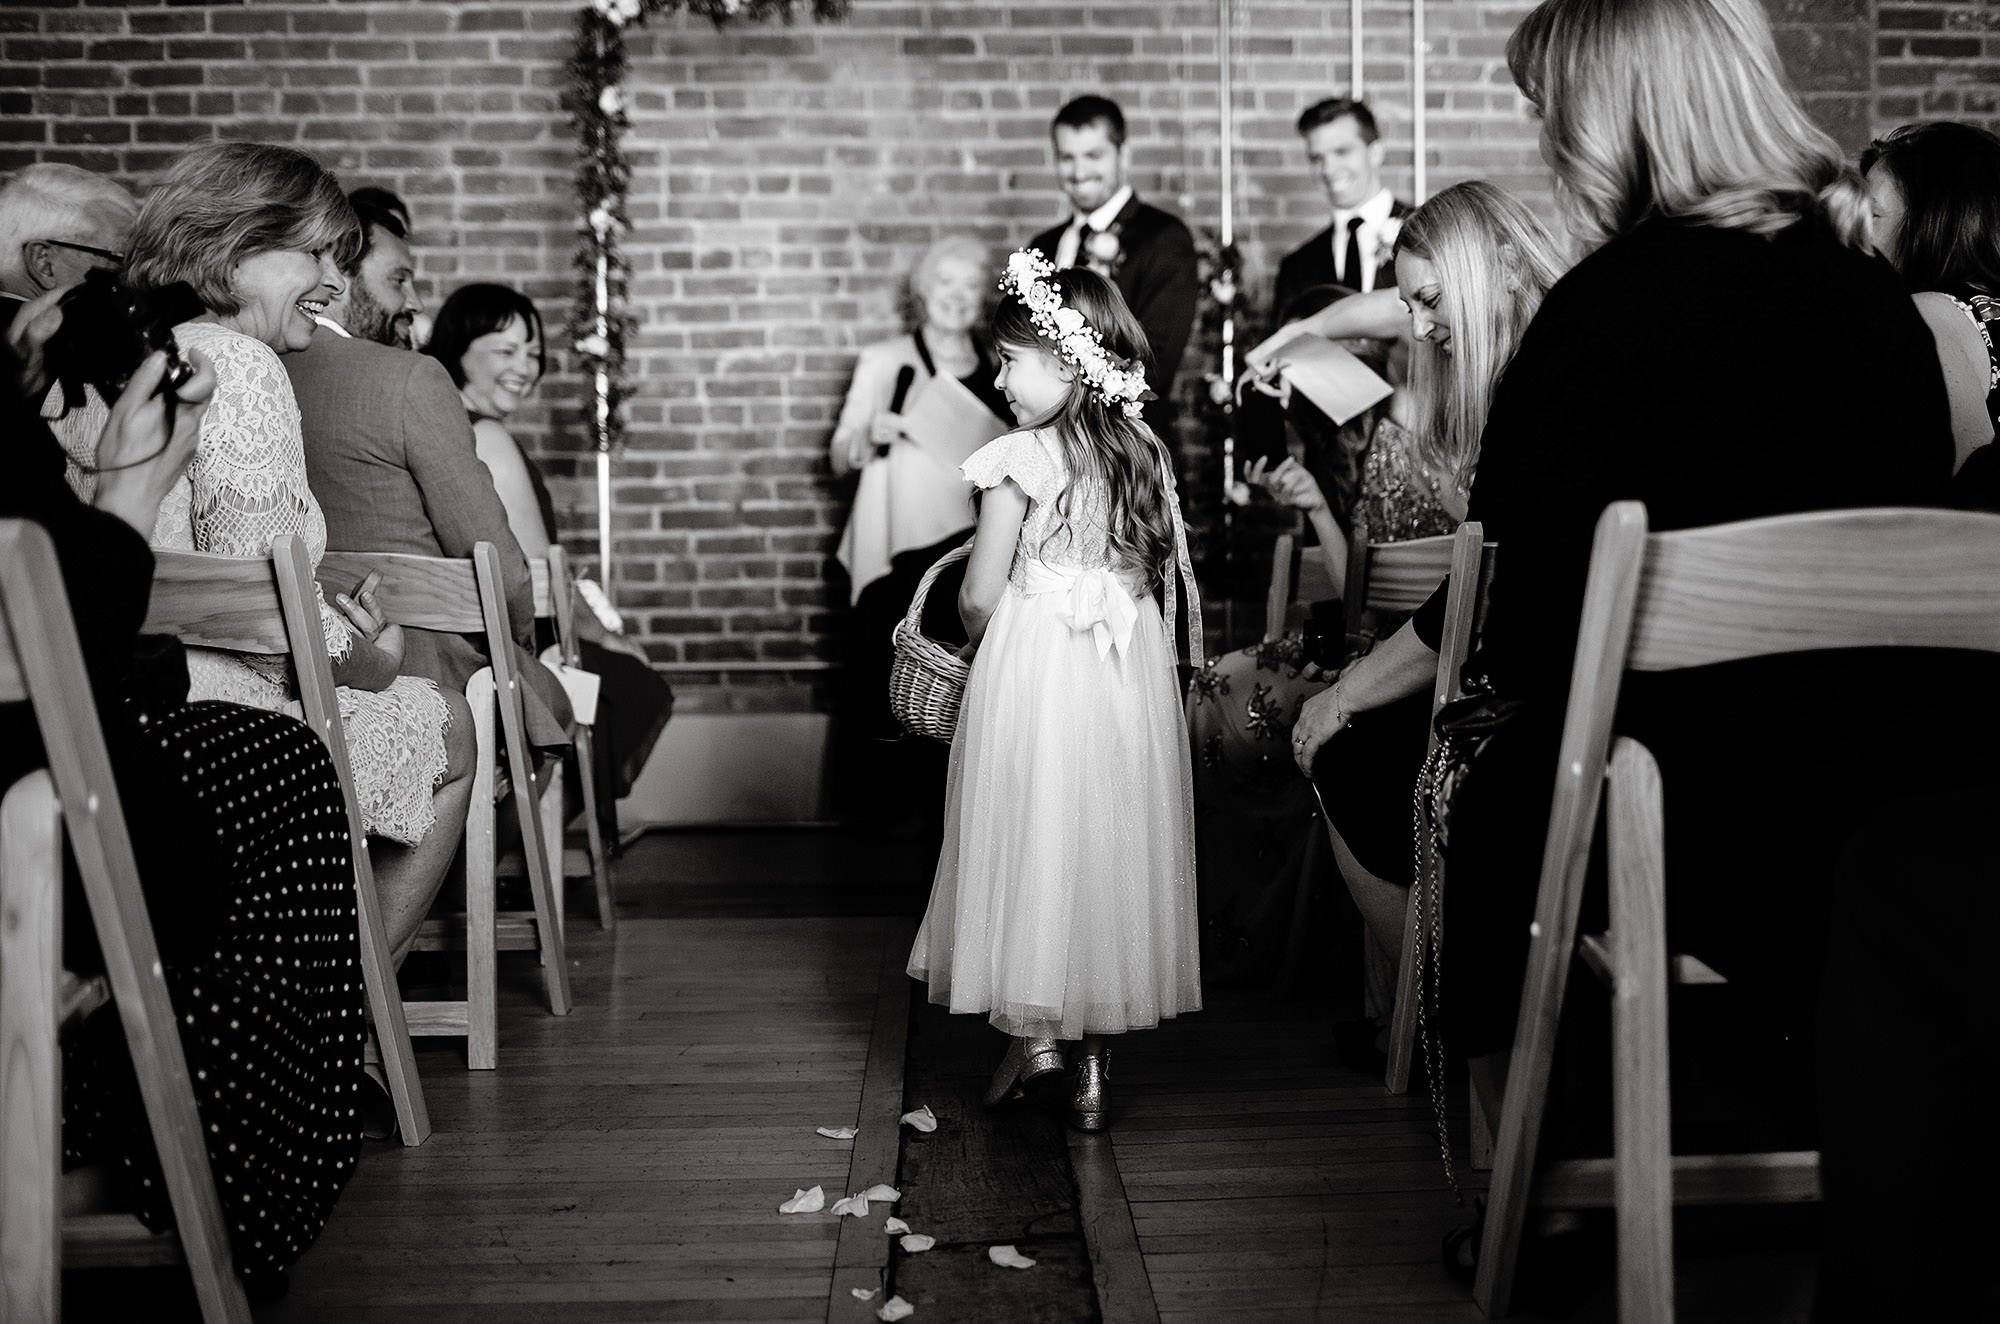 Loft at 600 F Wedding  I  A flower girl walks down the aisle during the wedding ceremony.